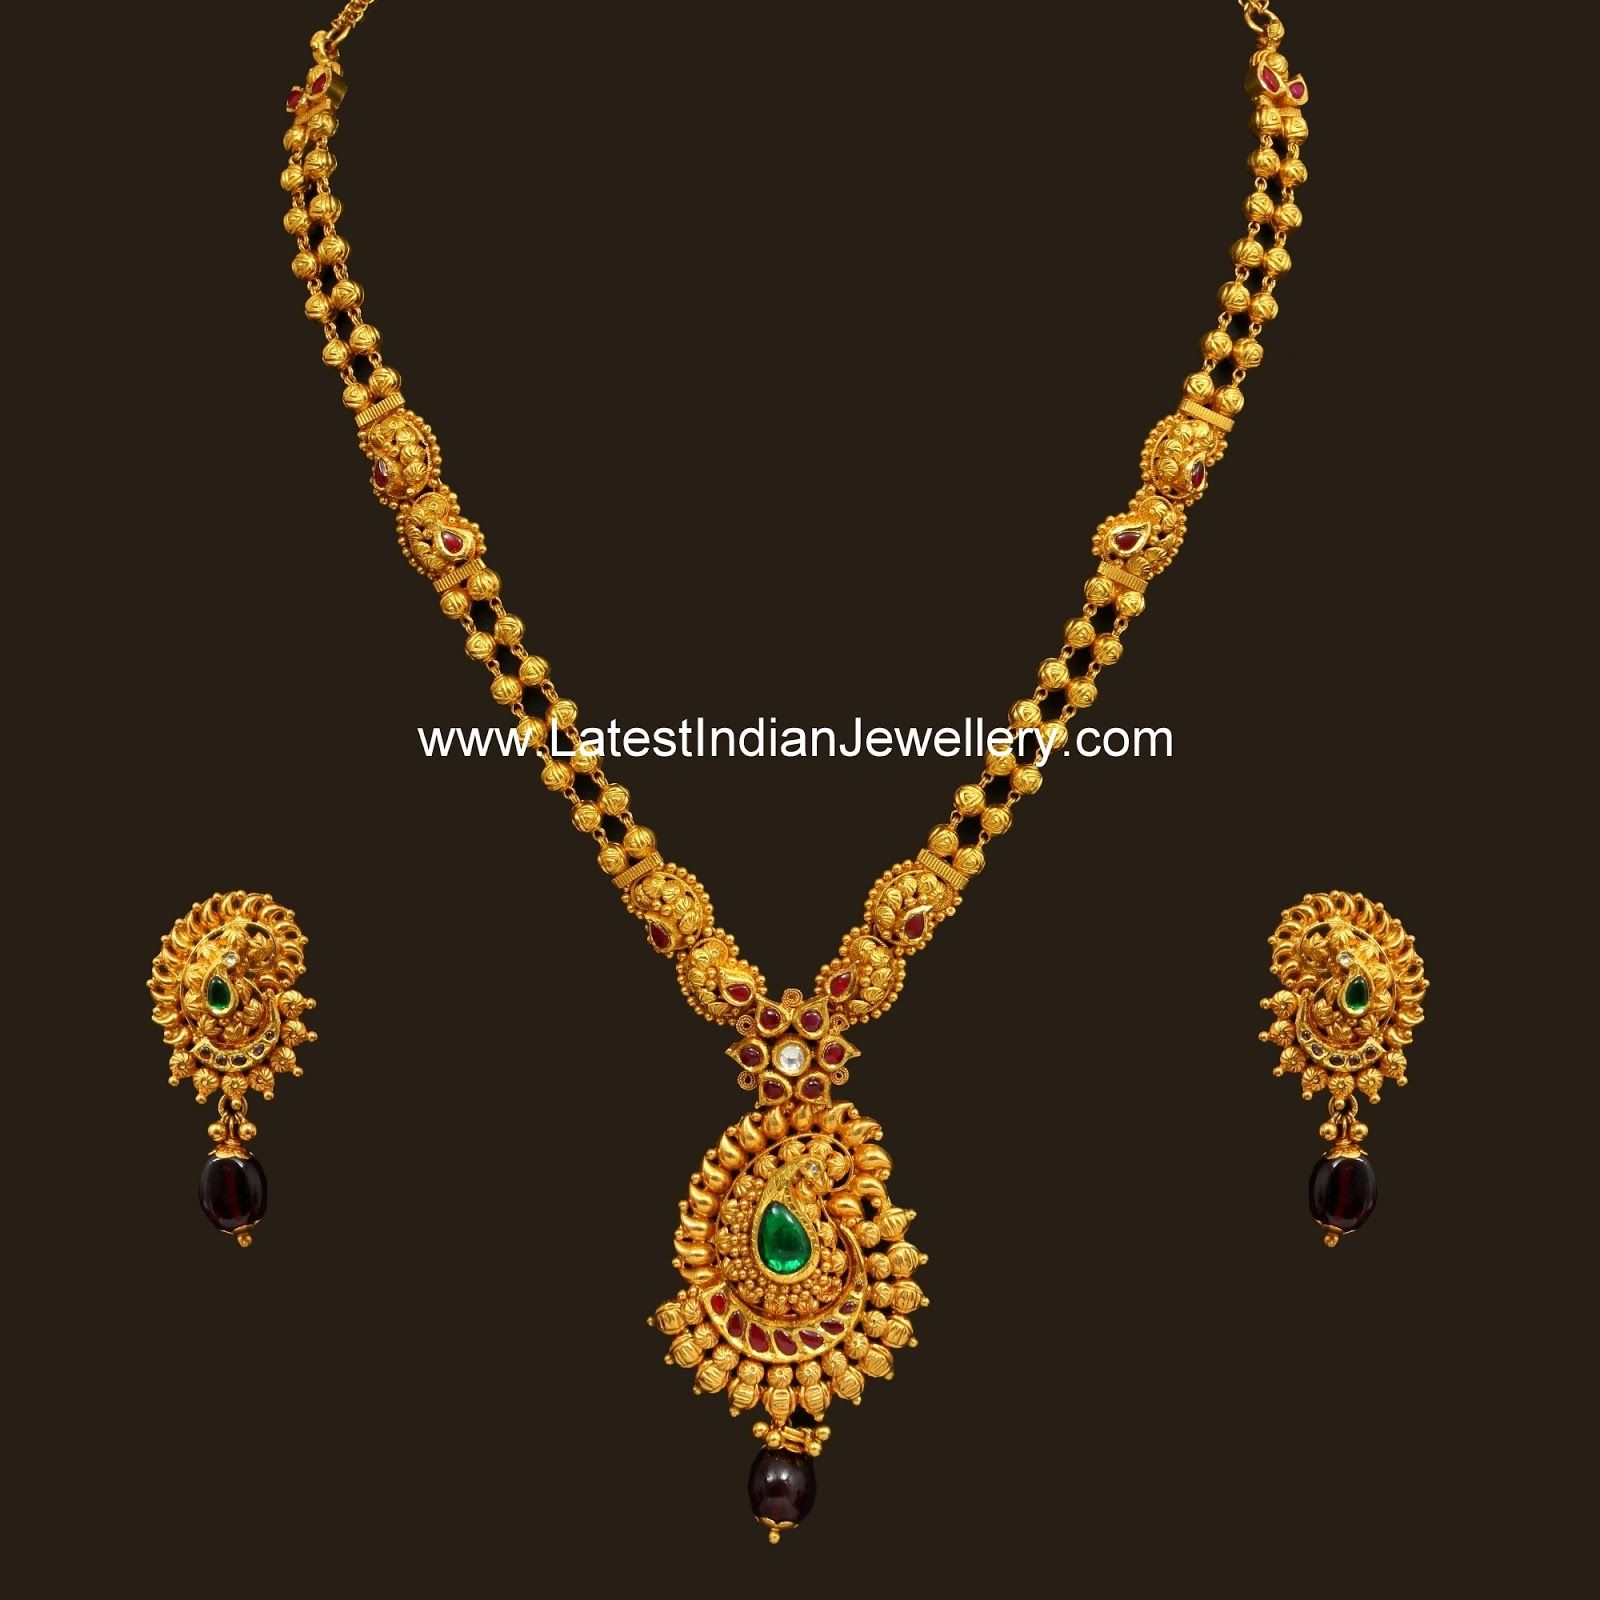 lakh design simple pin in jewellery indian diamond necklace latest designs